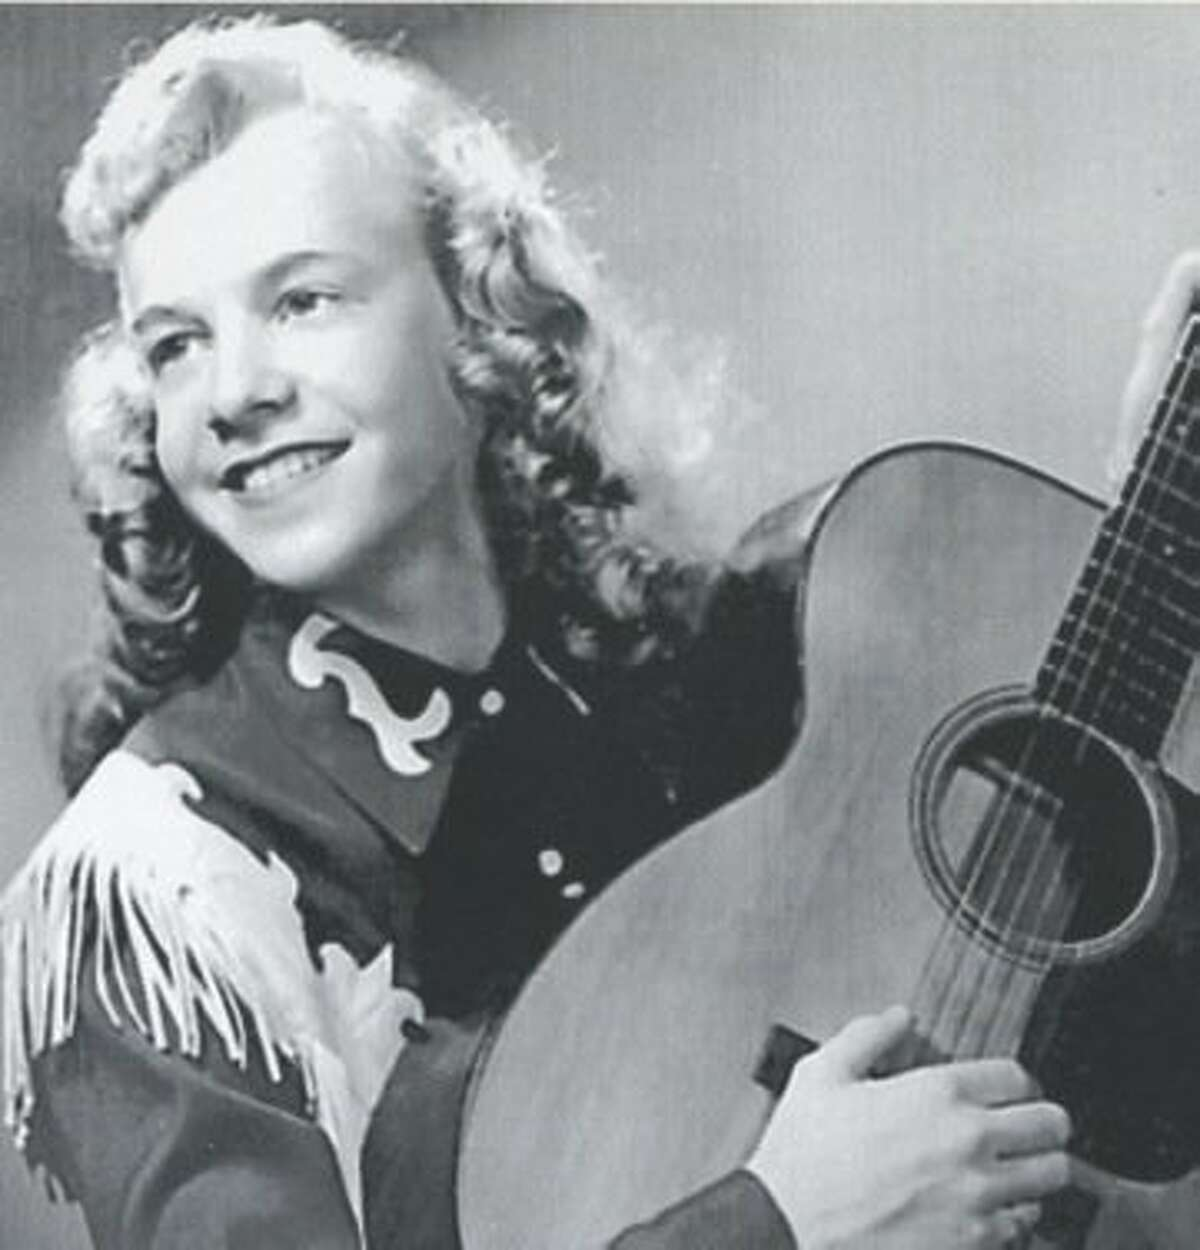 Rockabilly queen Janis Martin in her heyday.